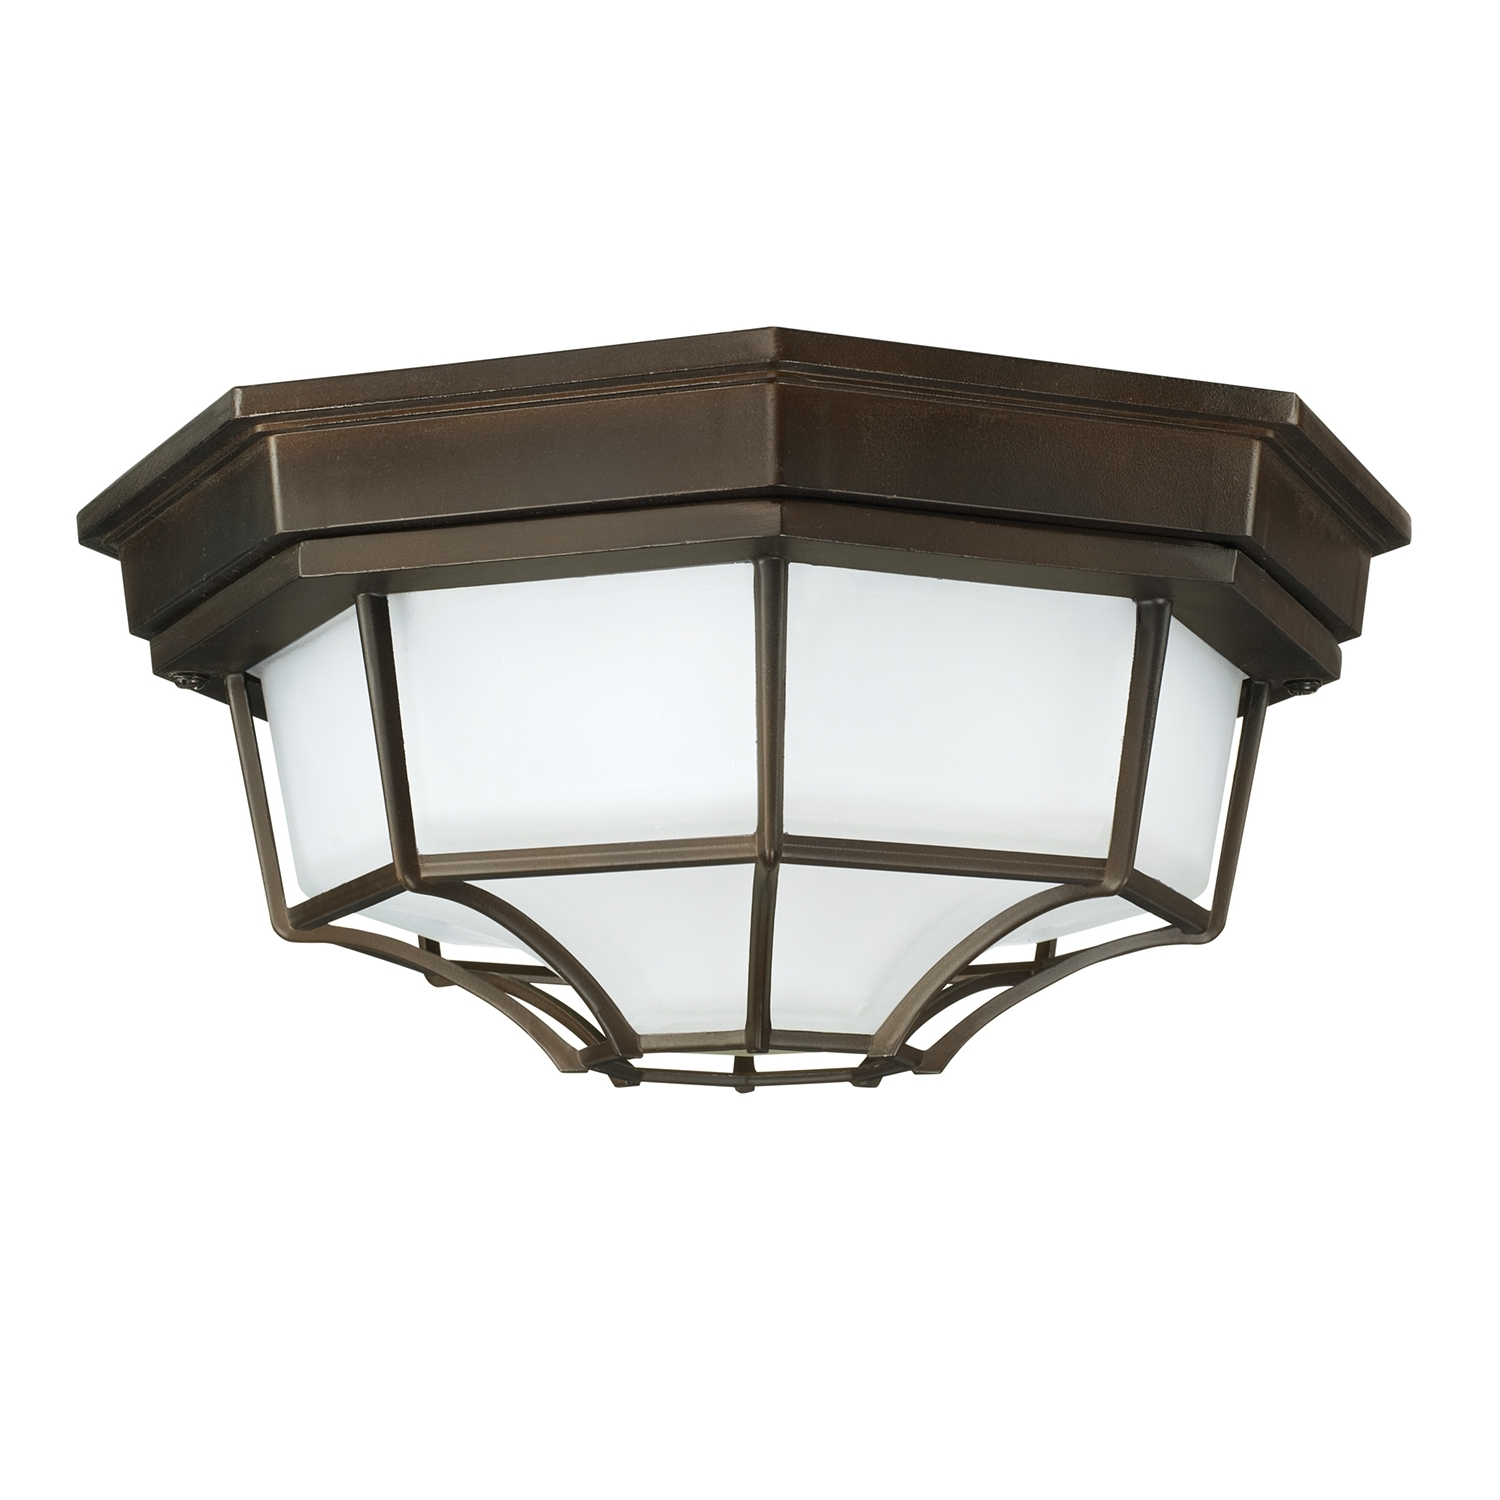 Current Outdoor Porch Ceiling Lights Regarding Outdoor Ceiling Lighting (View 3 of 20)